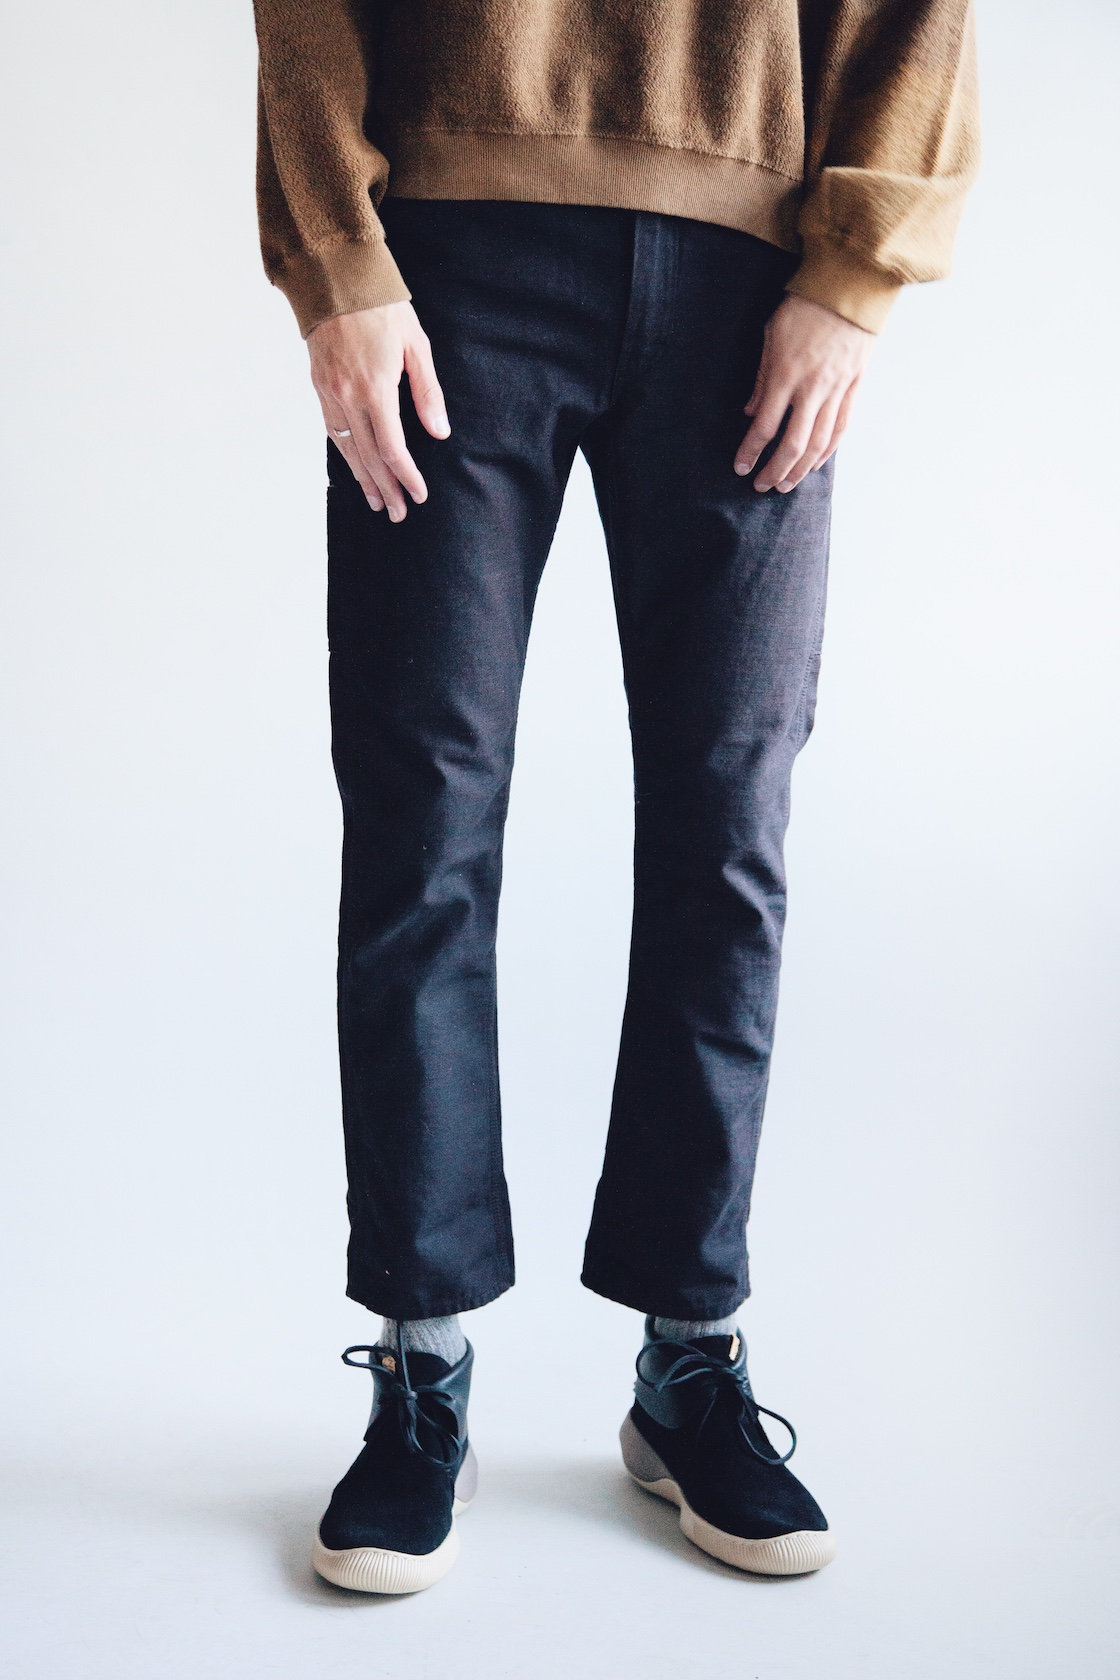 Noma t.d. breach twist sweatshirt, orslow canoe club painter pants and ute moc trainer shoes from visvim on body